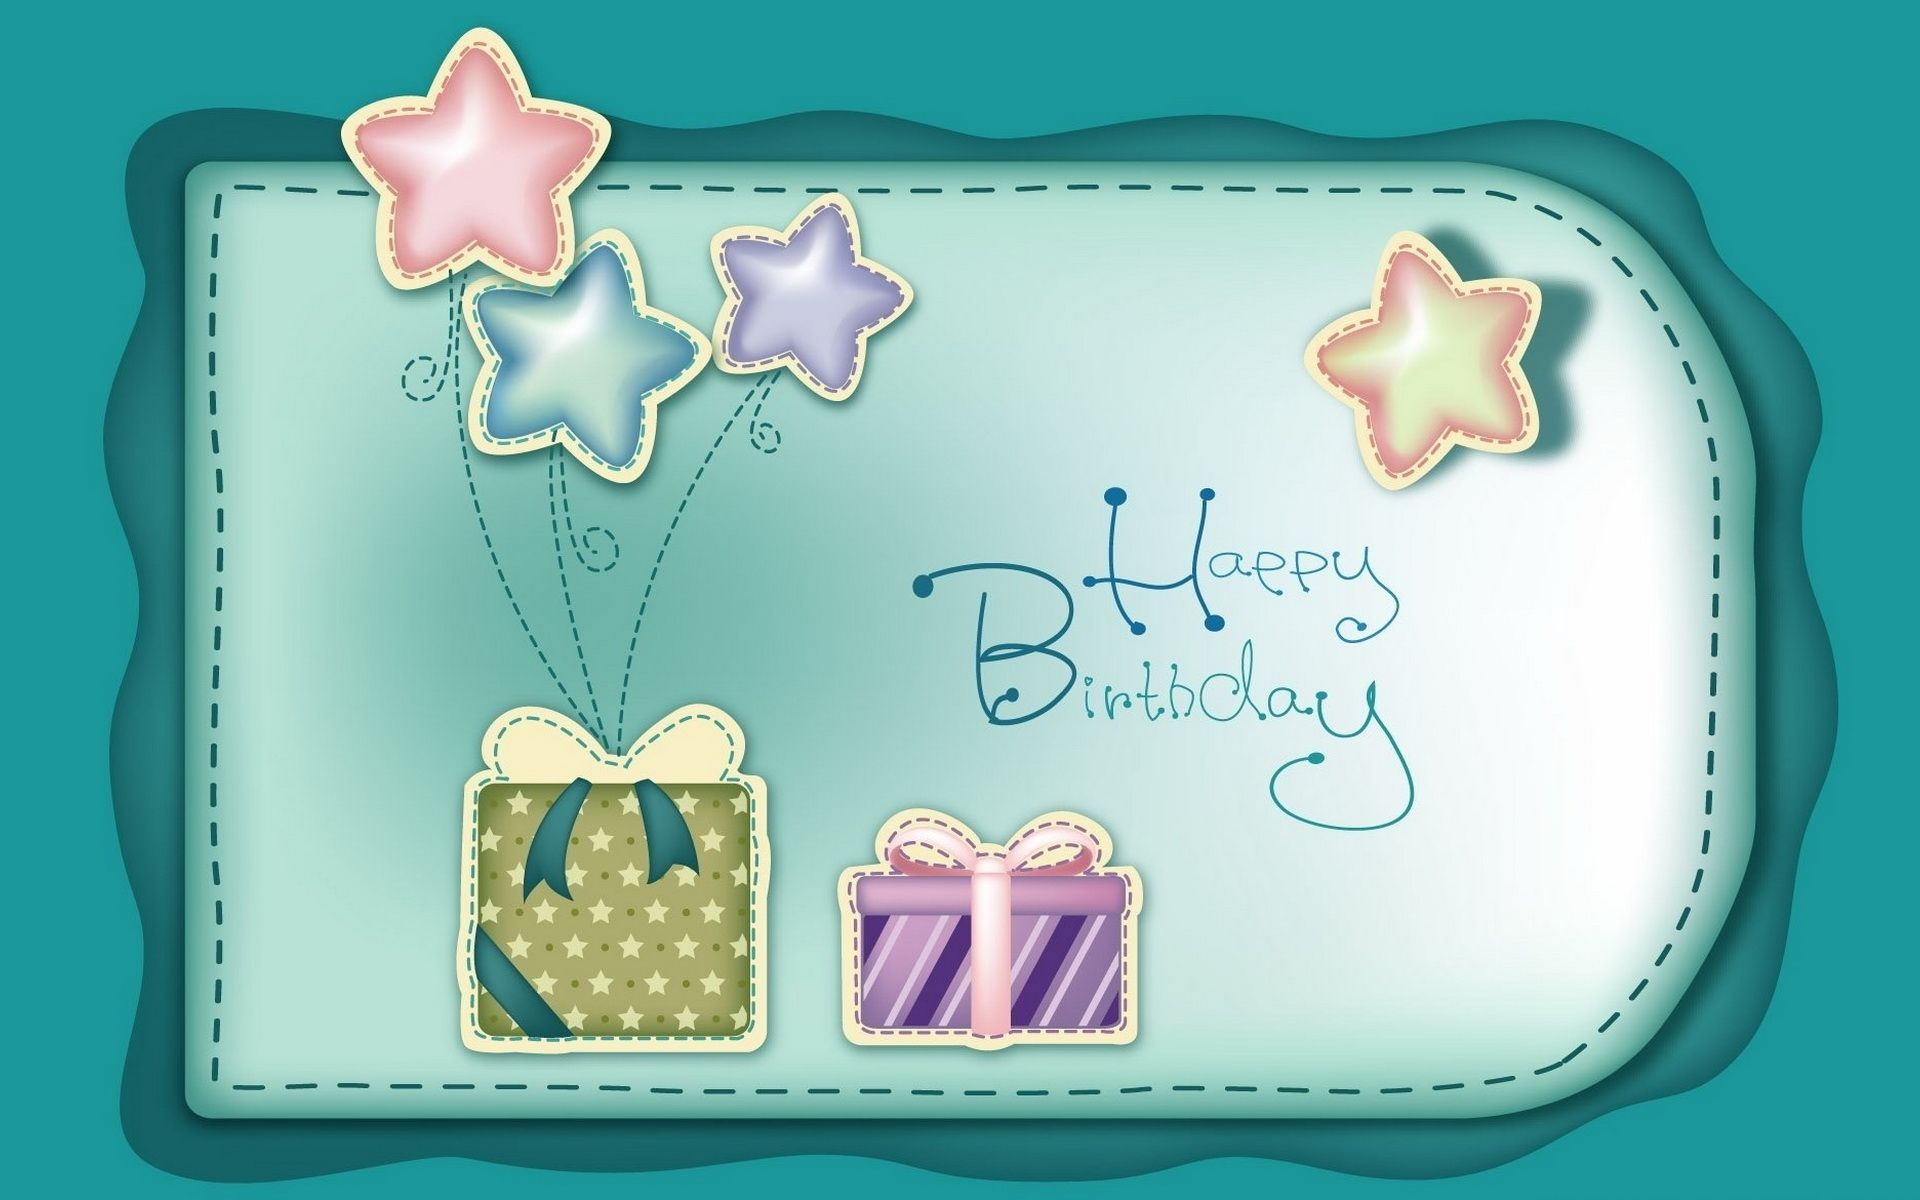 Birthday card wallpapers and images   wallpapers pictures photos 1920x1200